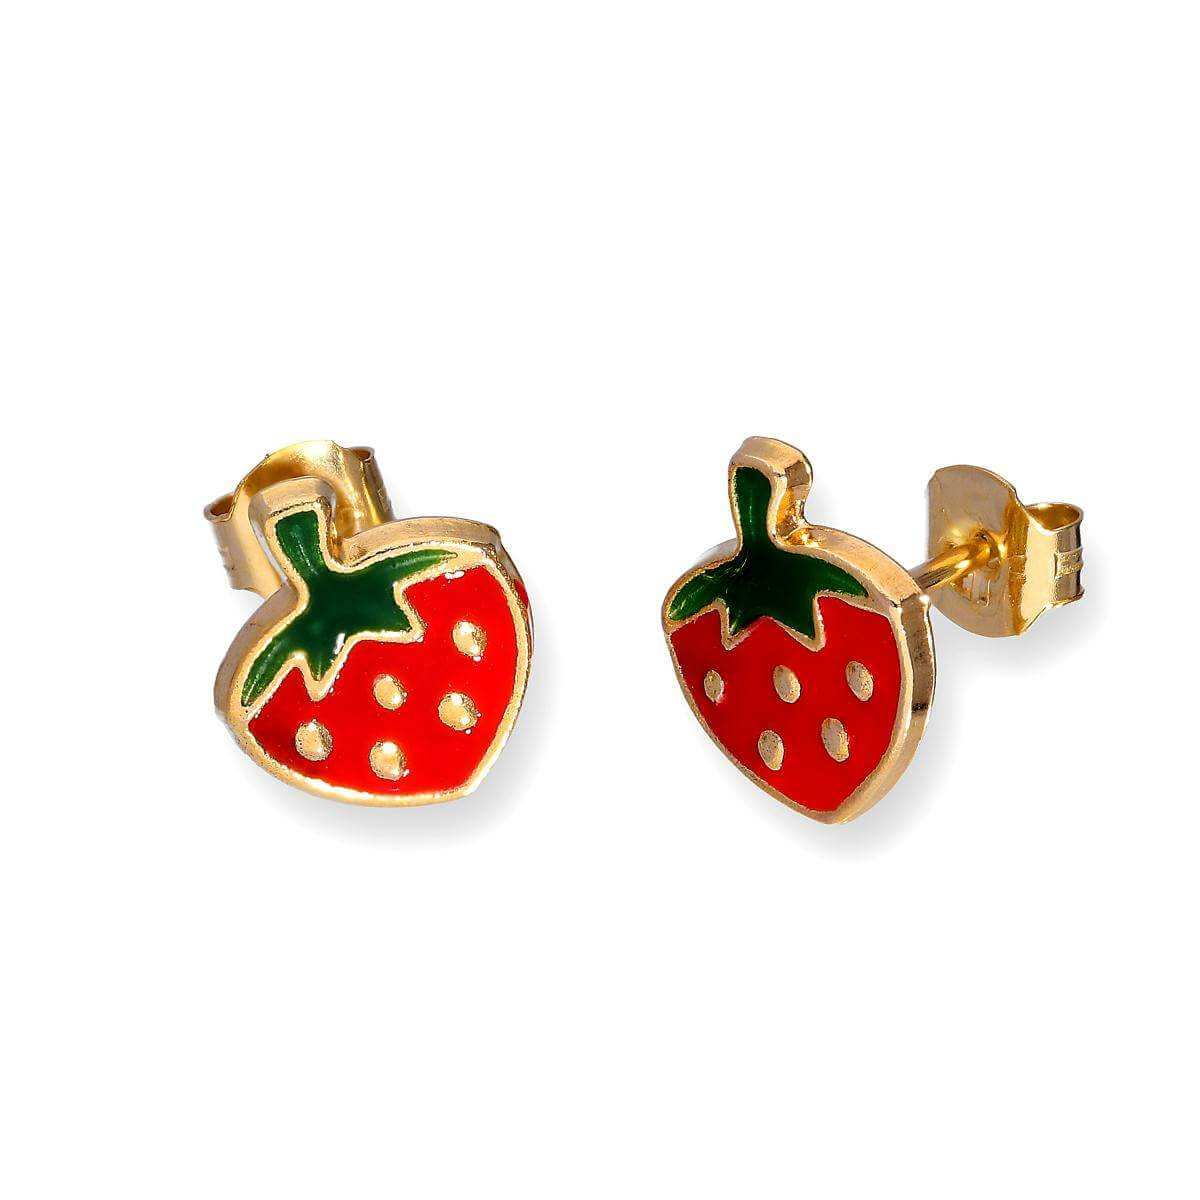 9ct Gold & Enamel Flat Strawberry Stud Earrings